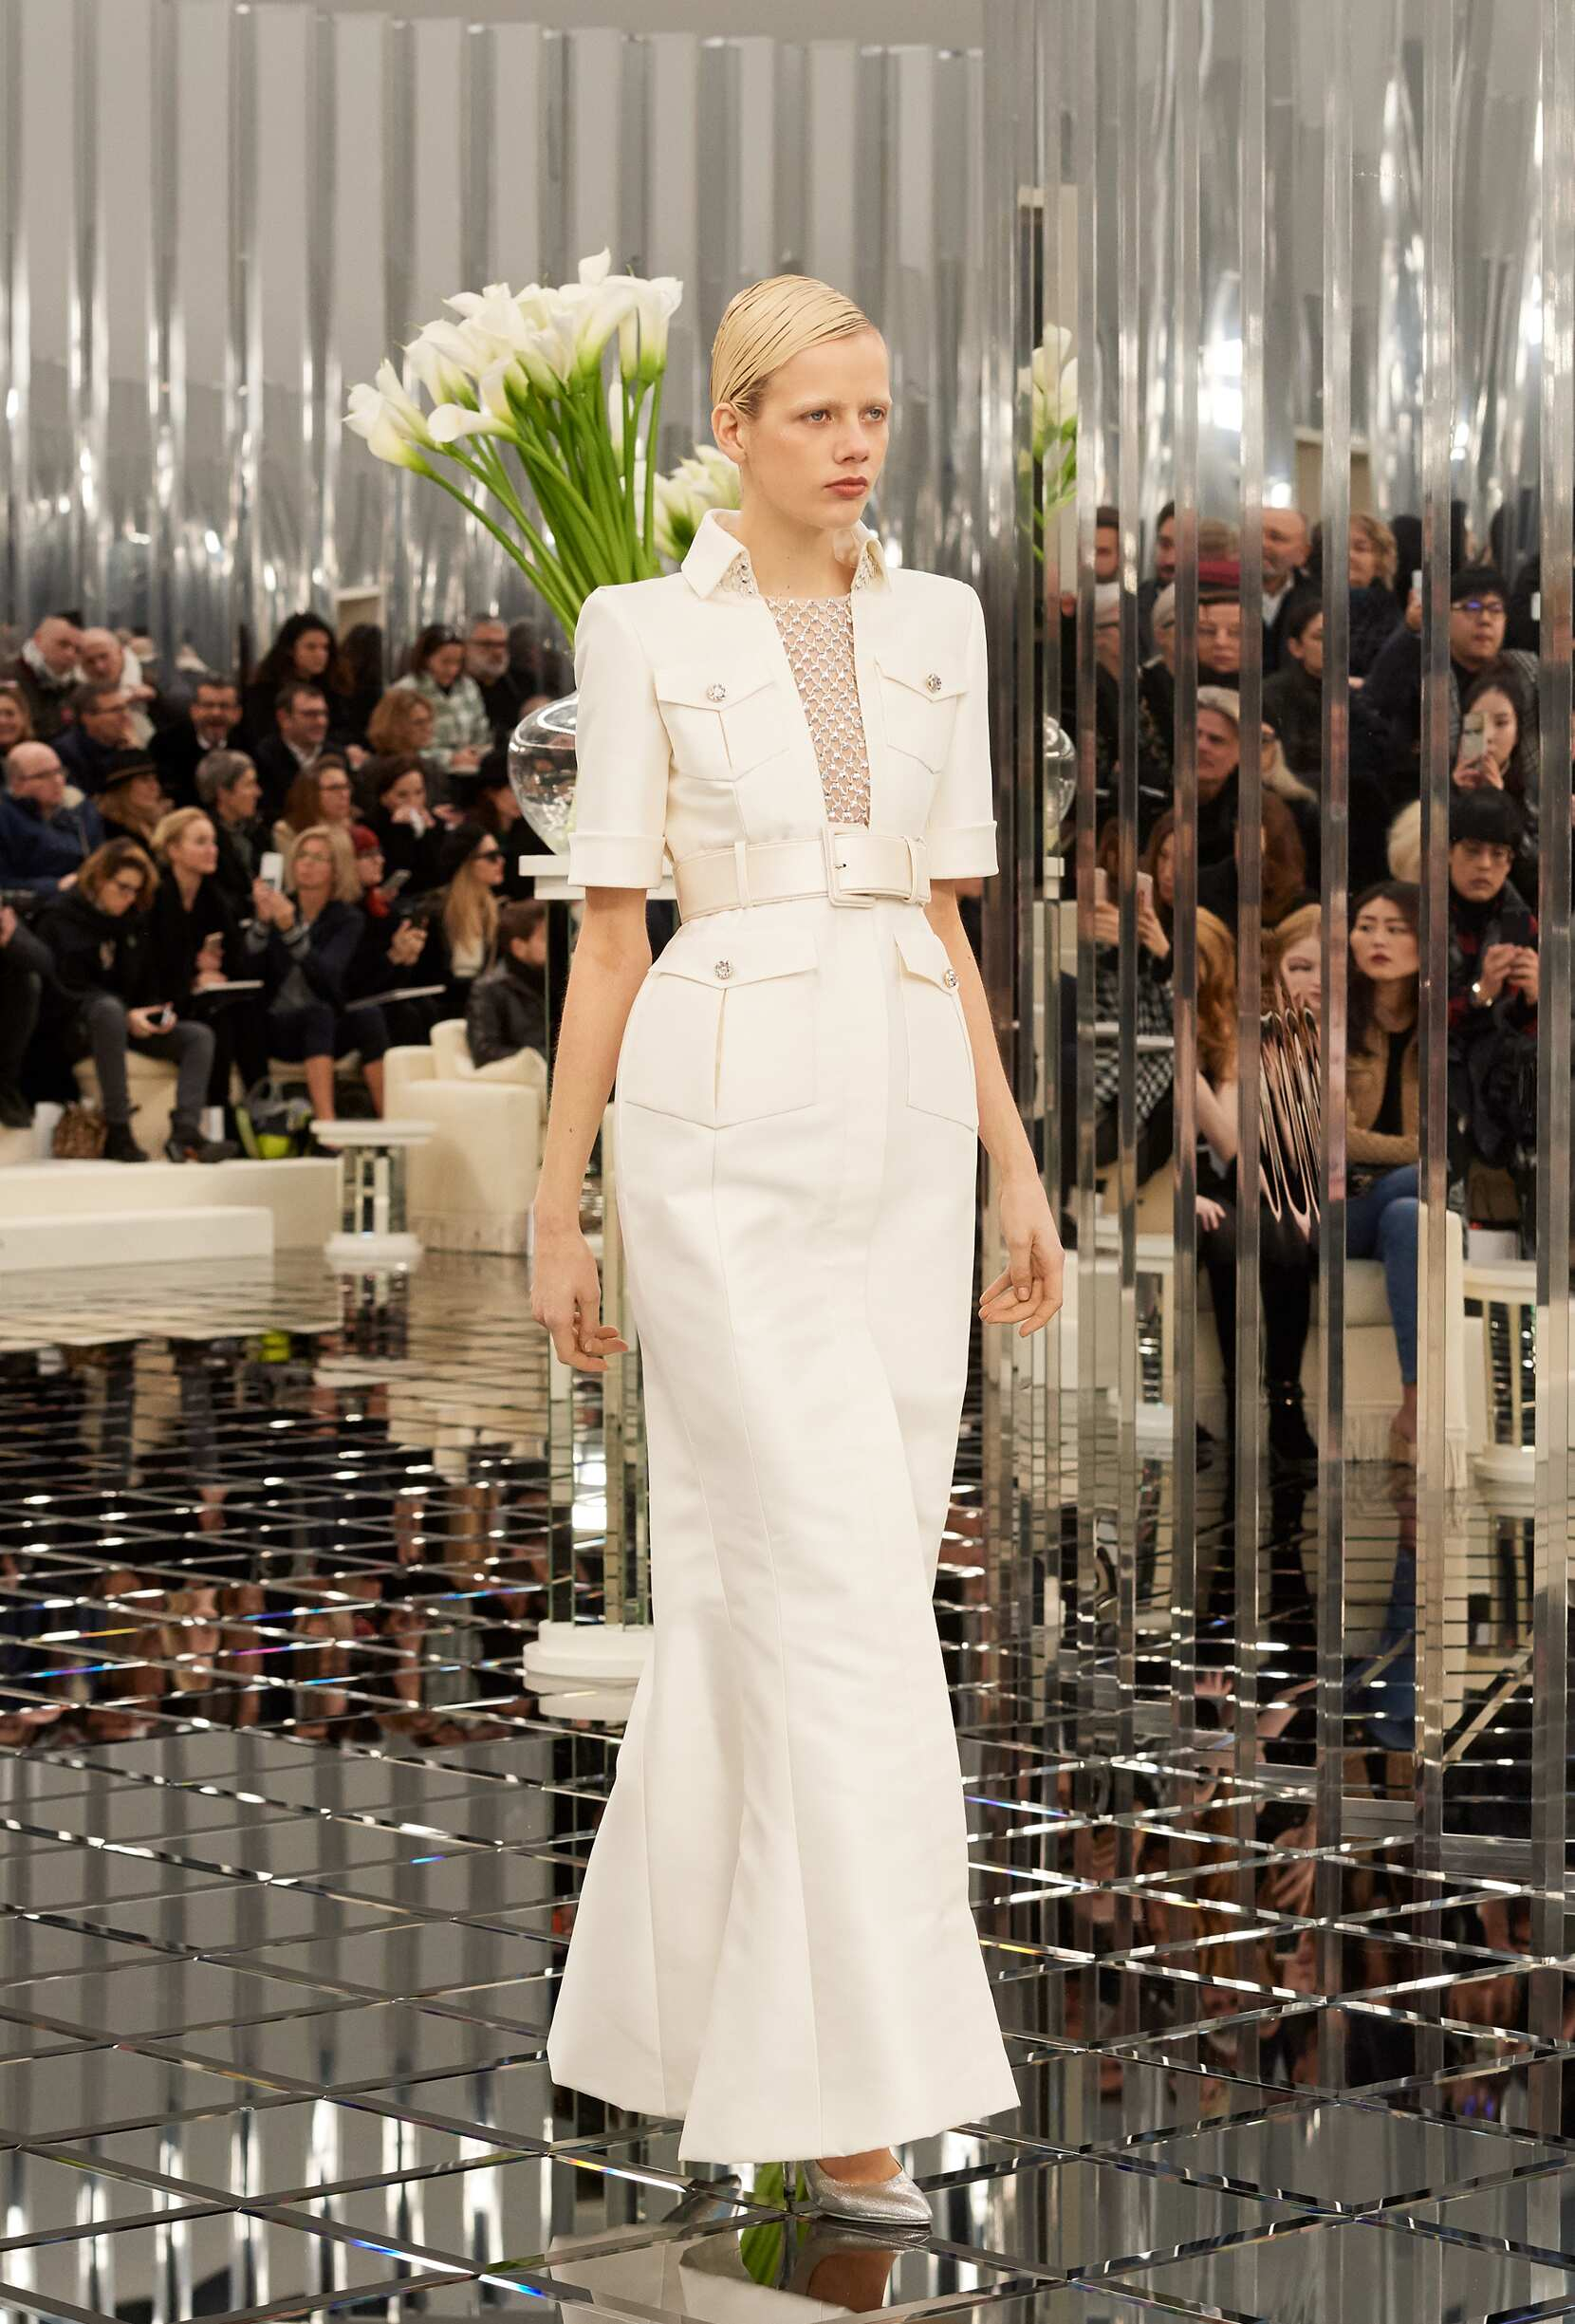 Chanel Haute Couture Woman Fashion Style